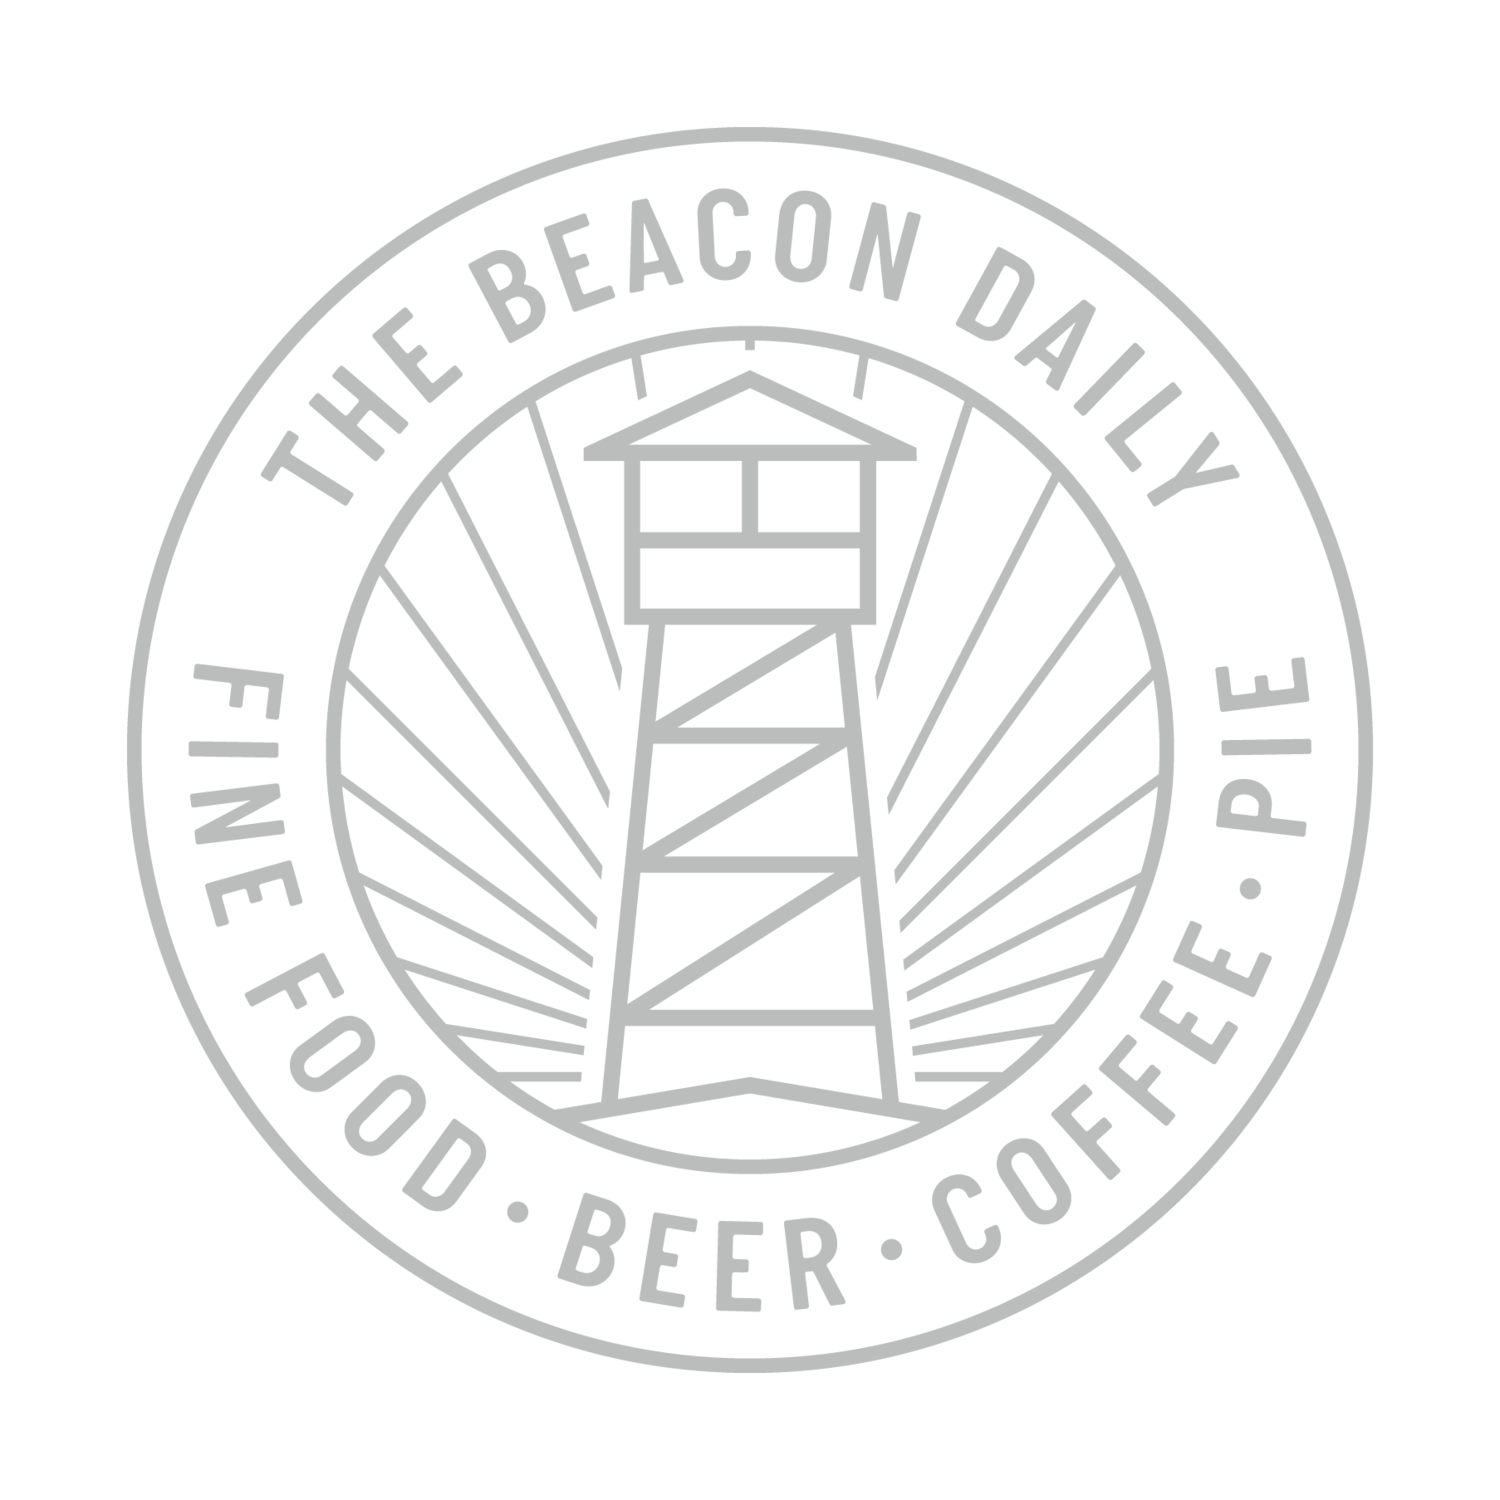 THE BEACON  DAILY